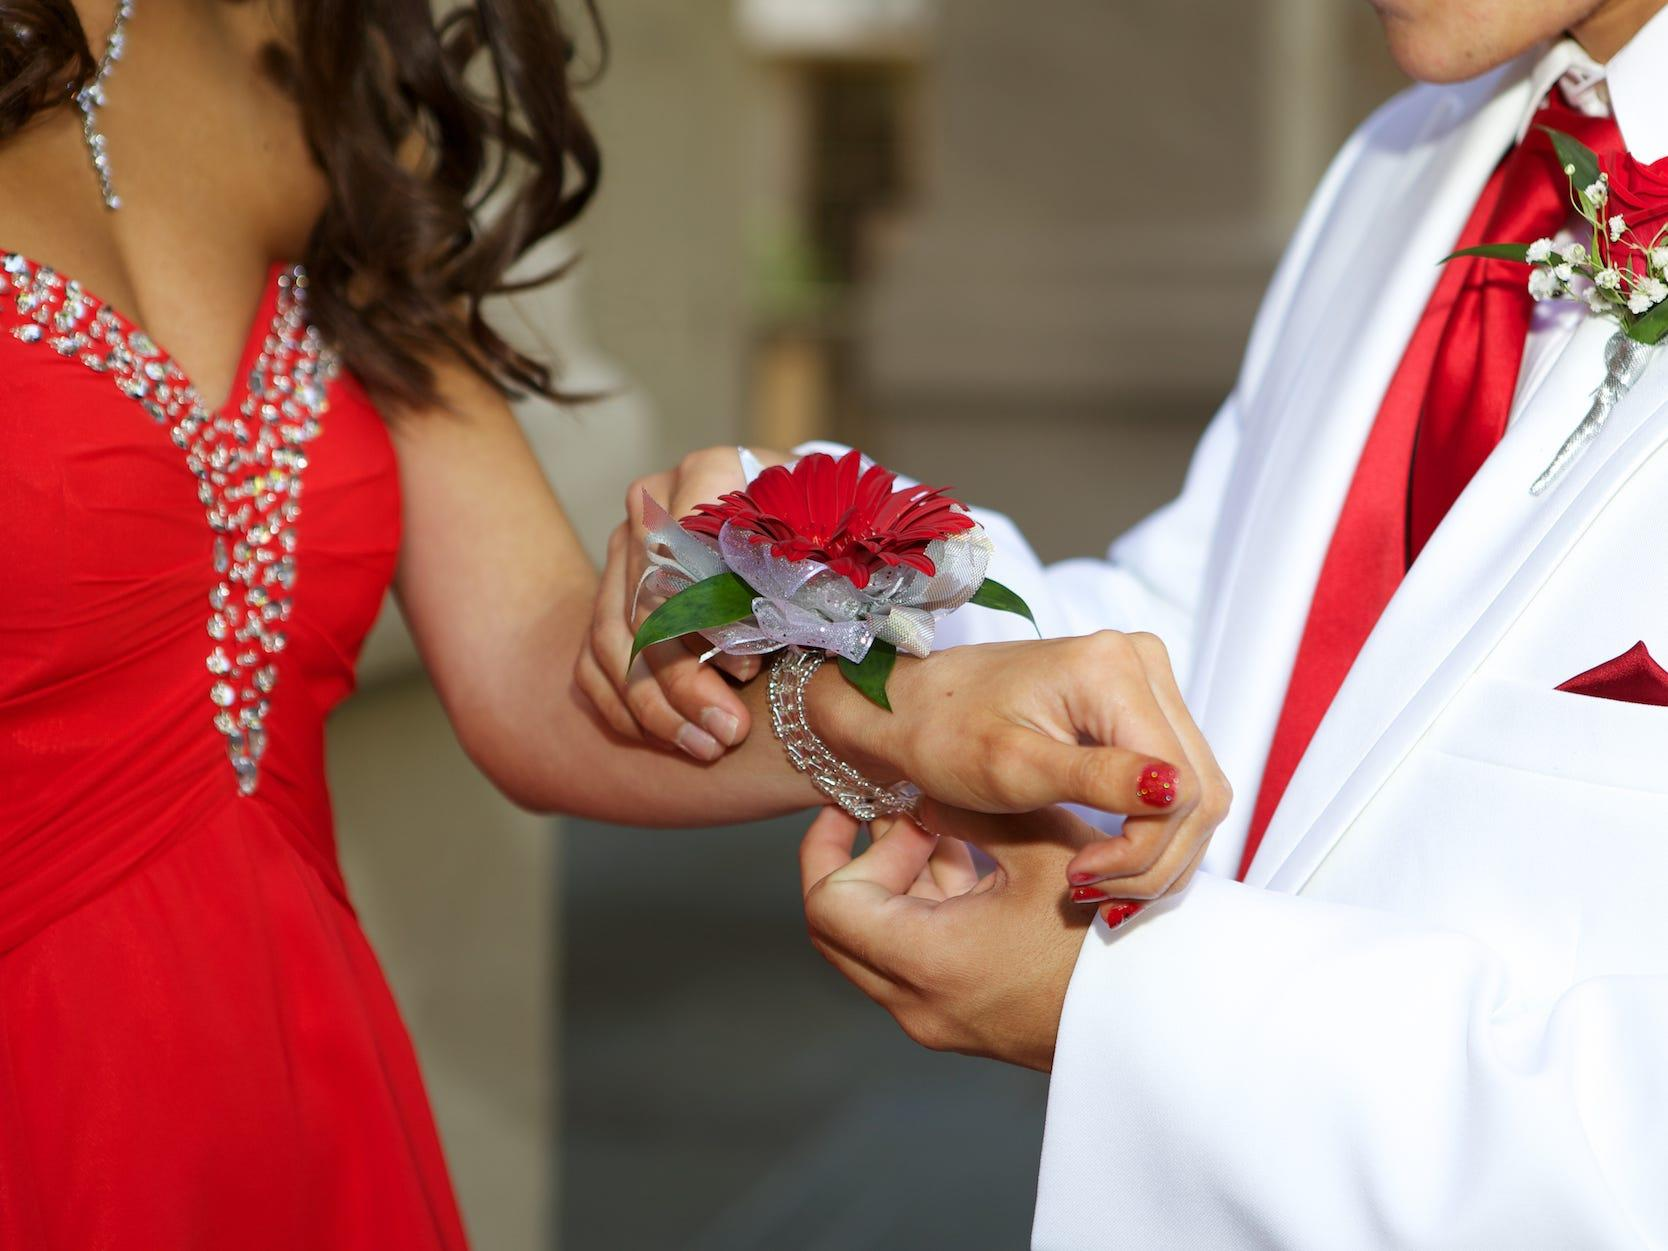 Students at a New Hampshire high school were marked with a 'black Sharpie on their hands' based on their vaccination status at their prom